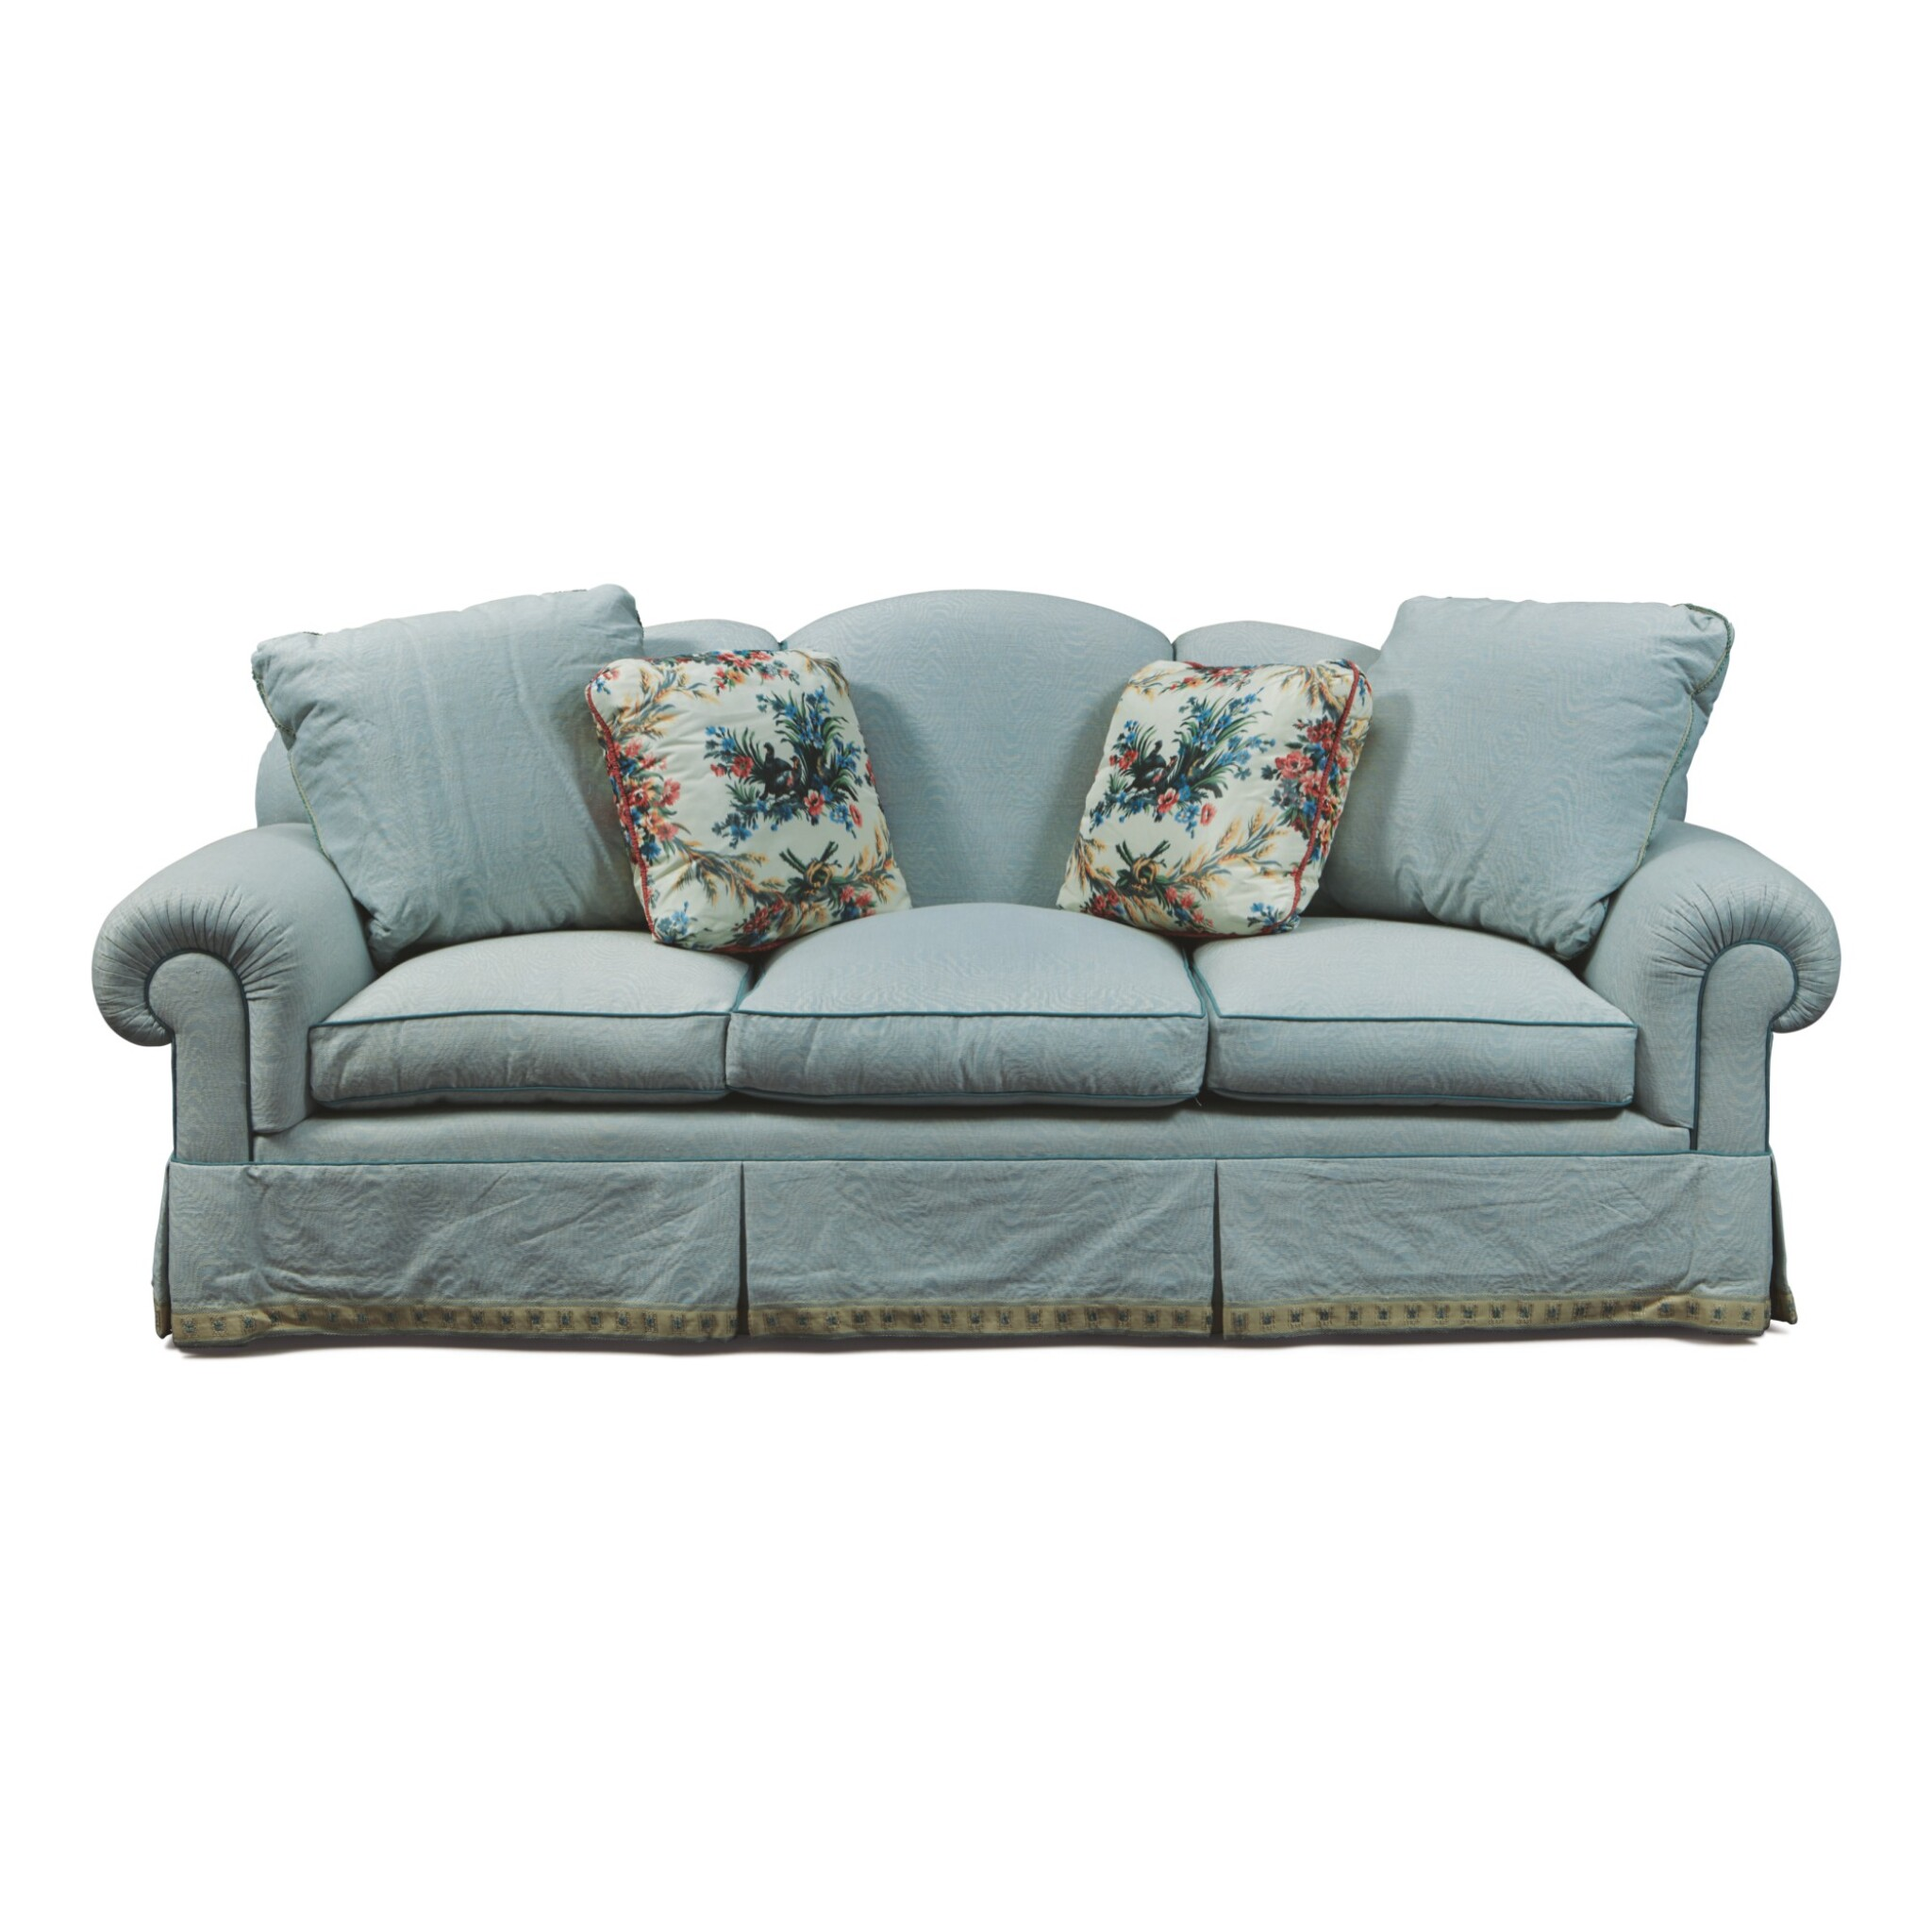 View full screen - View 1 of Lot 78. A DE ANGELIS BLUE UPHOLSTERED SOFA, MODERN.